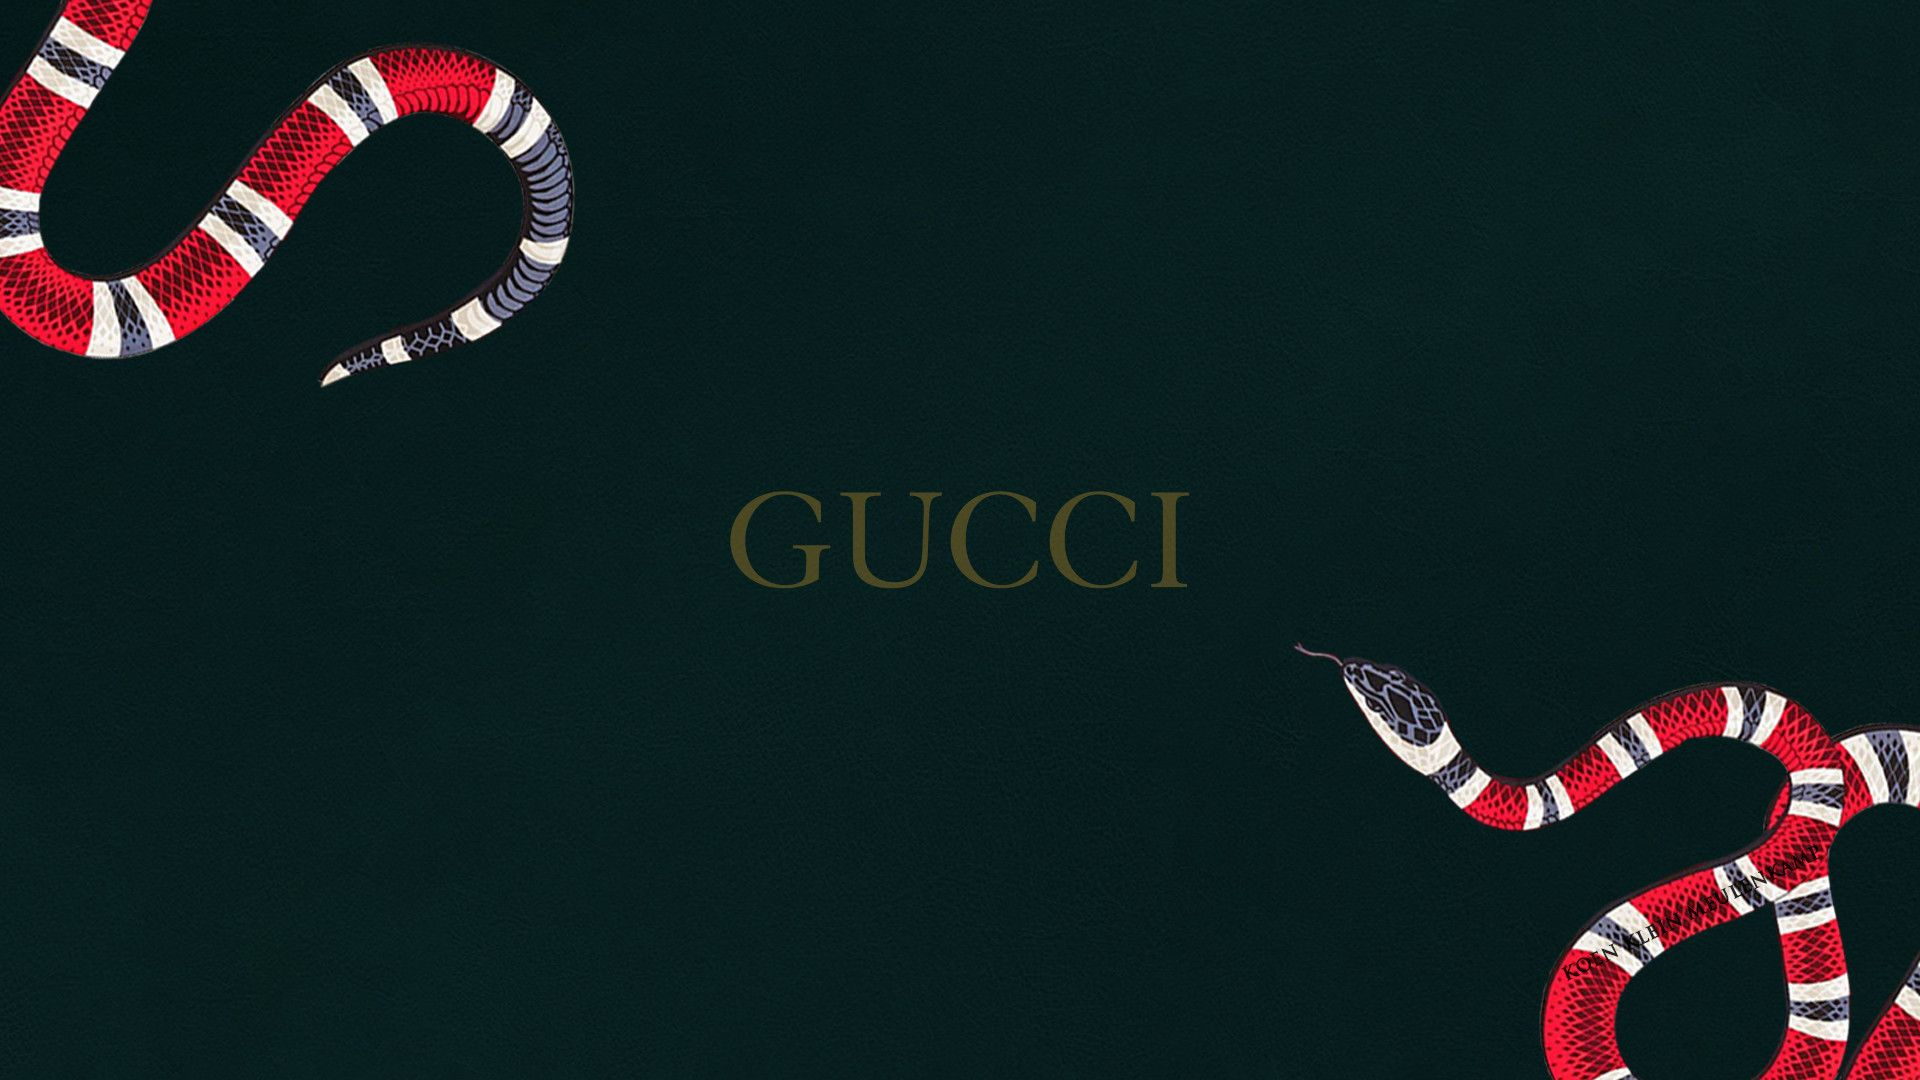 1920x1080 13 Gucci Snakes wallpapers PSD files by fkkm1999 1920x1080